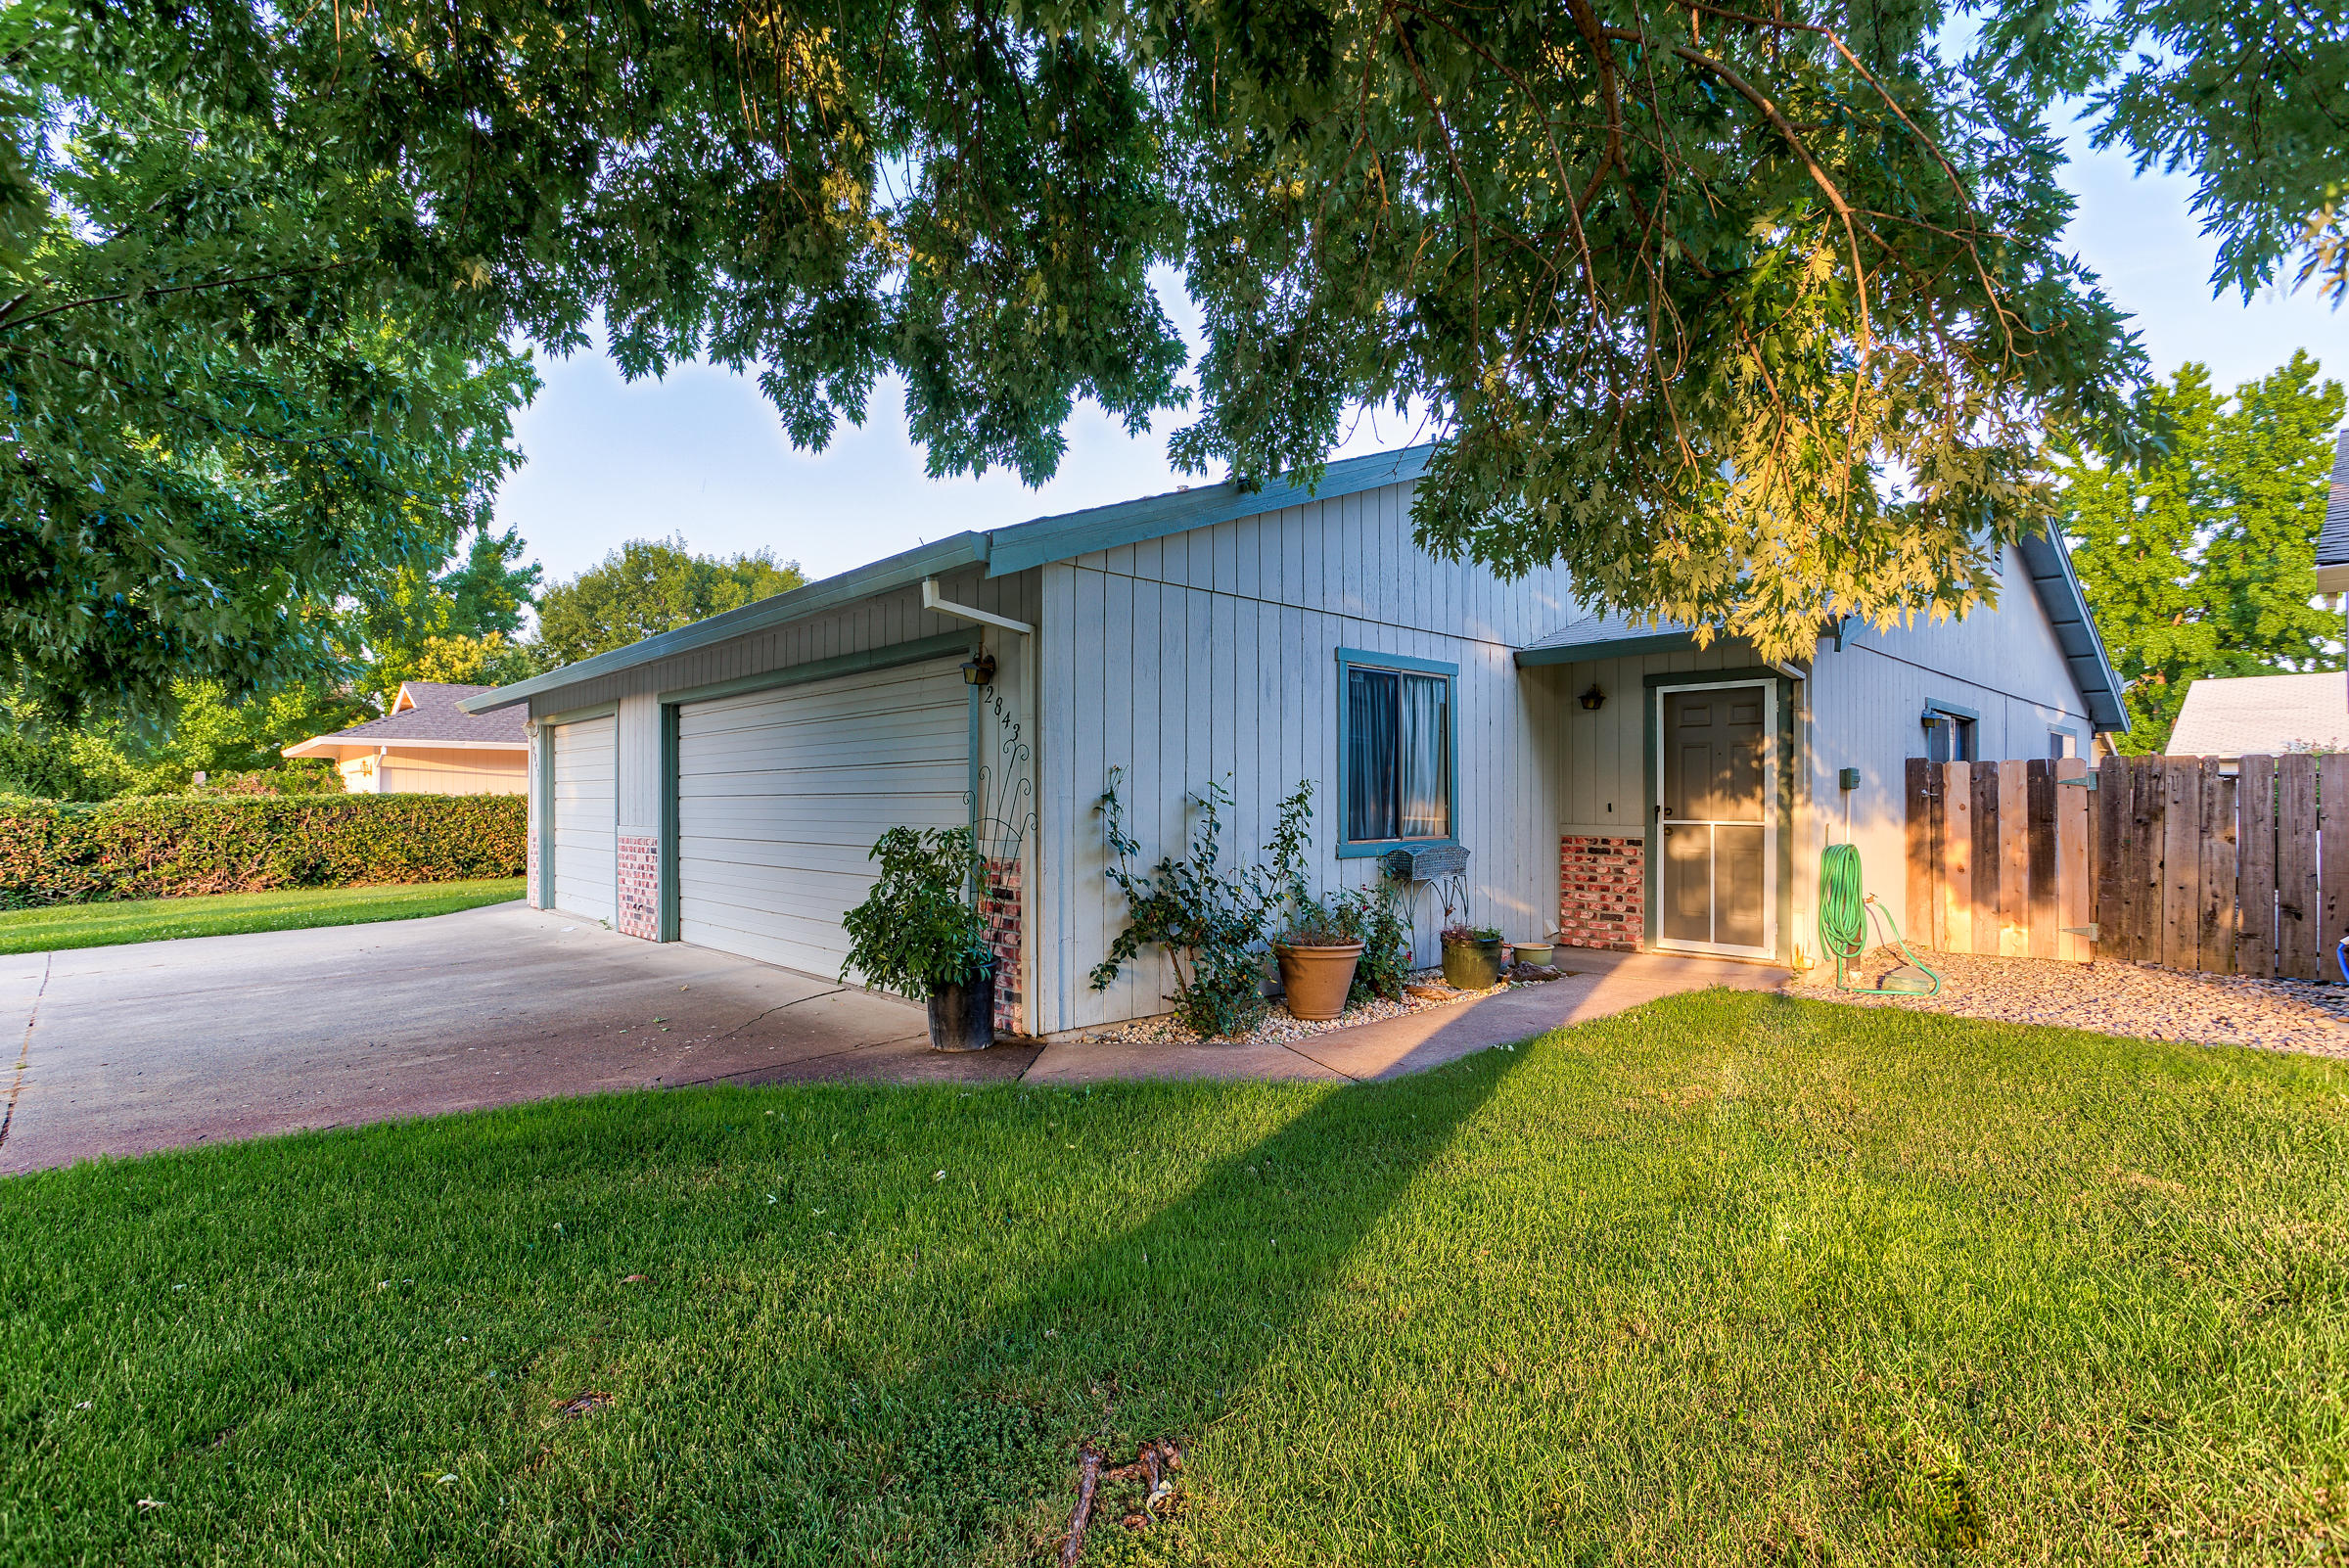 2843 Red Bud Ln, Anderson, CA 96007